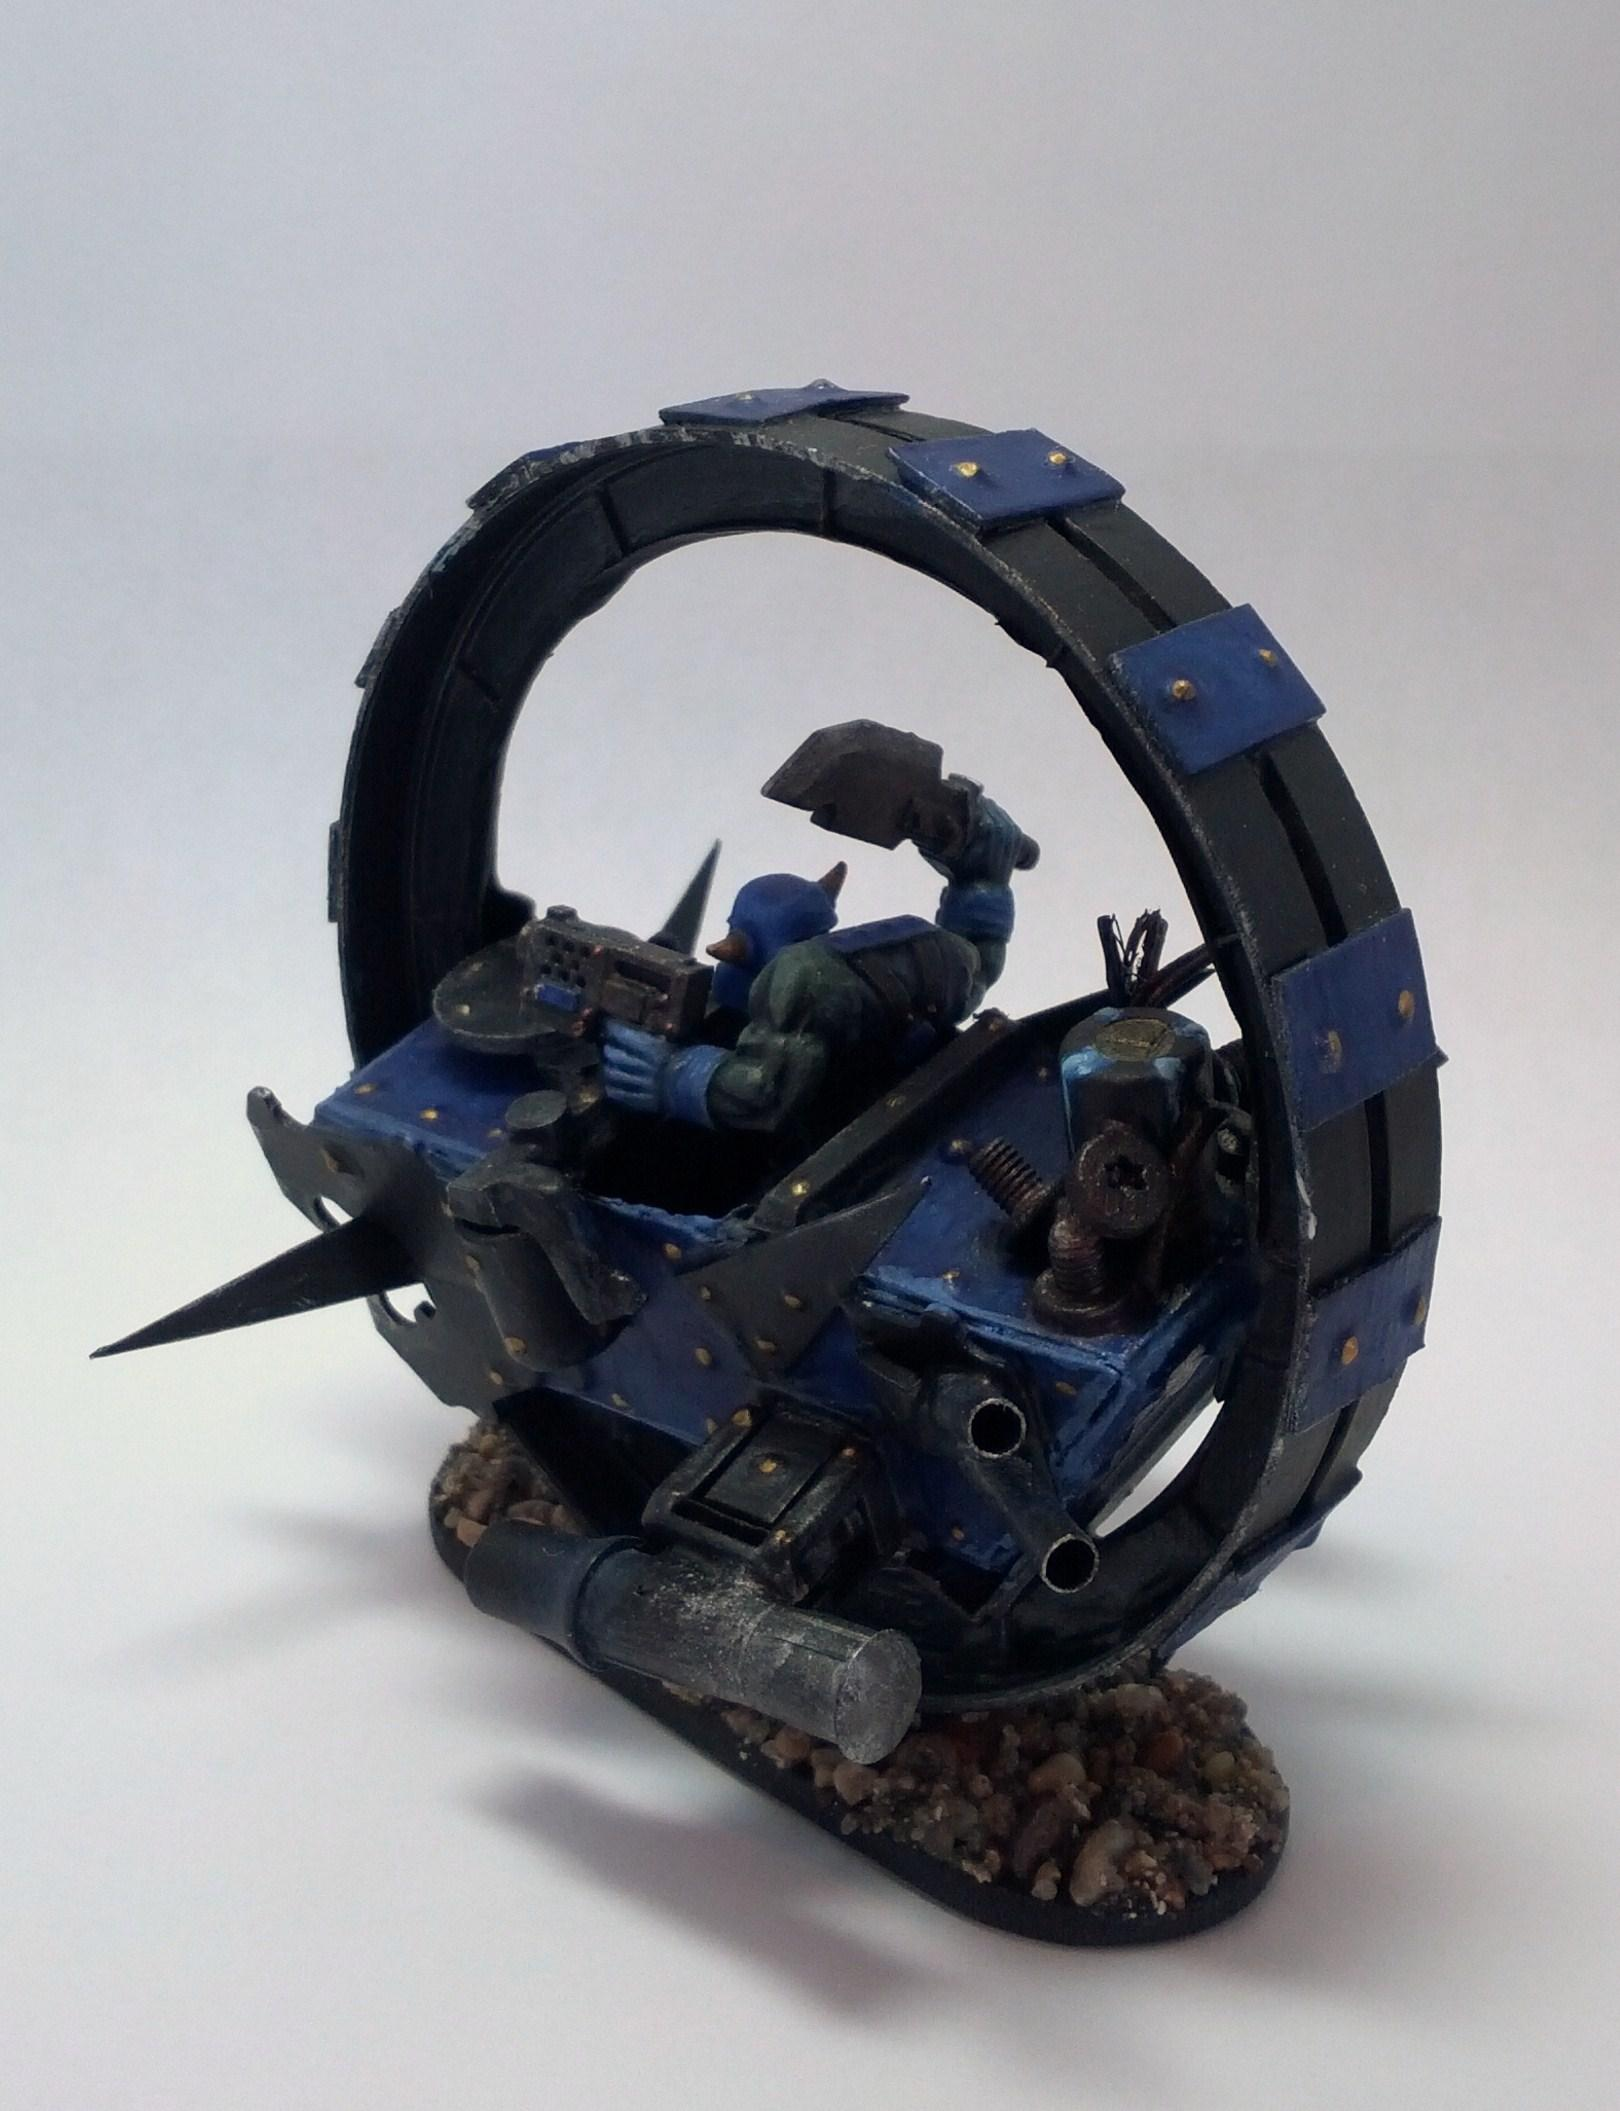 Bike, Monowheel, Orks, Scratch Build, Warbike